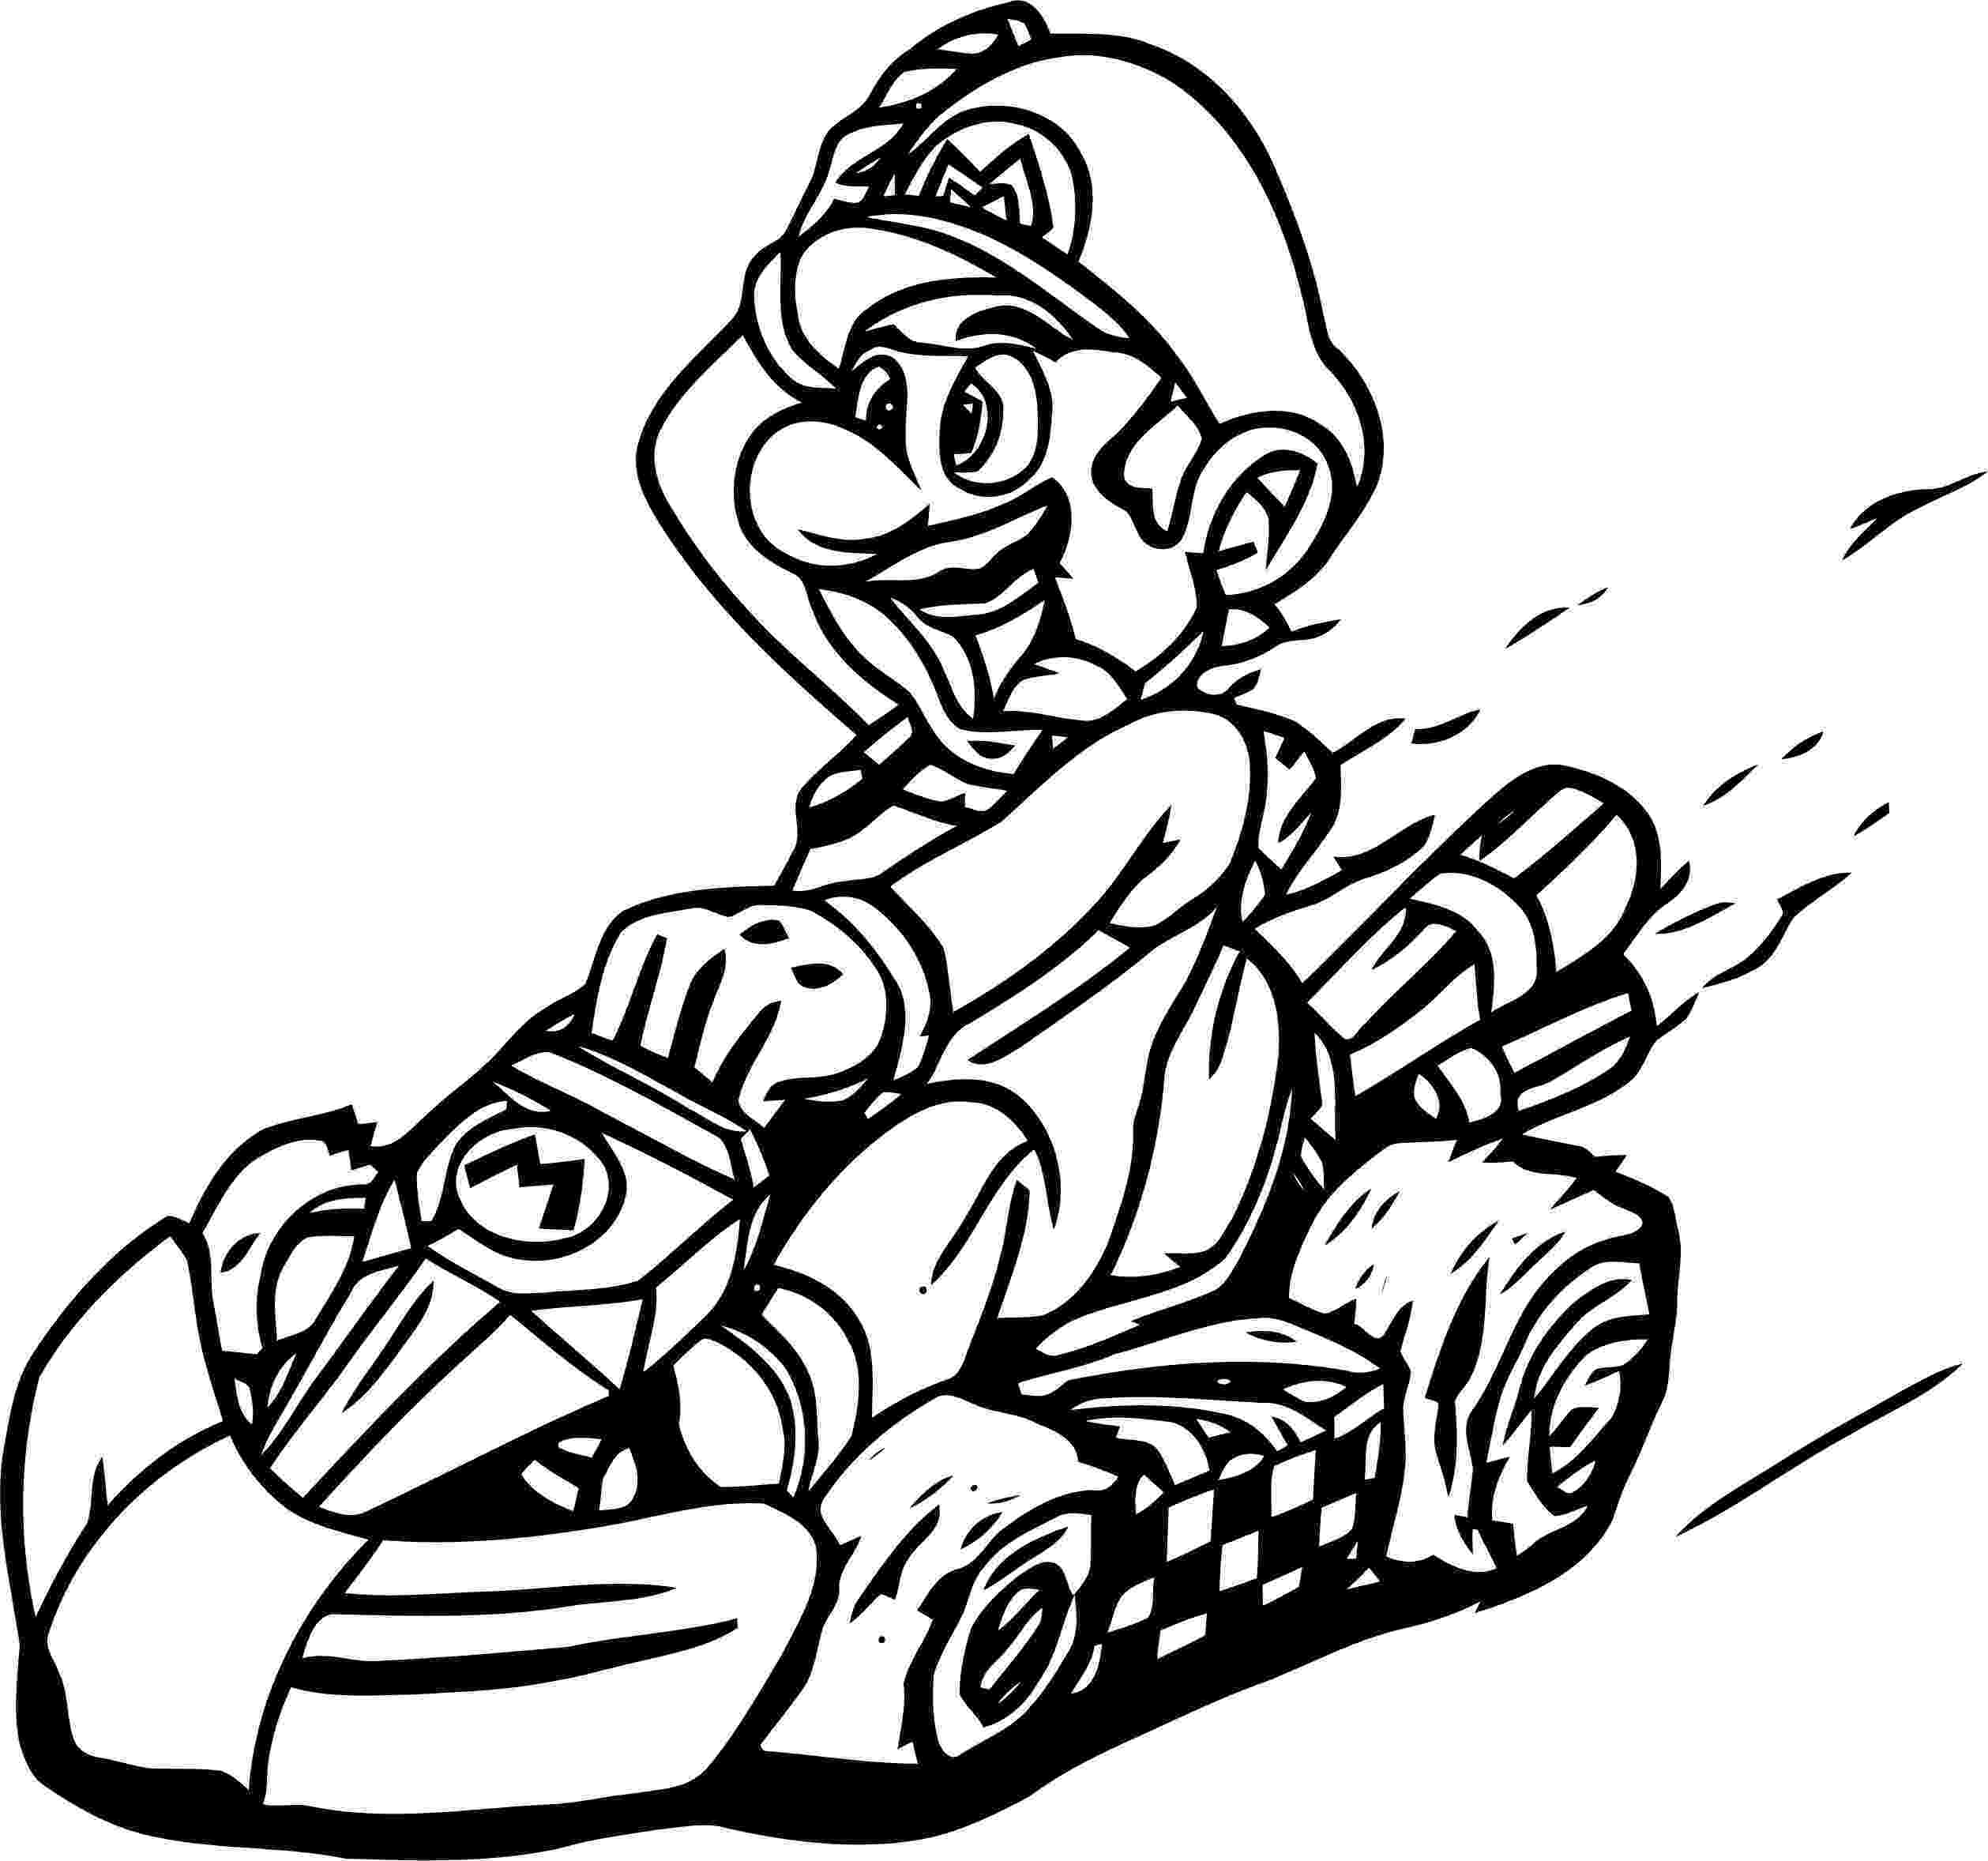 mario kart wii coloring pages mario kart coloring pages best coloring pages for kids kart coloring wii mario pages